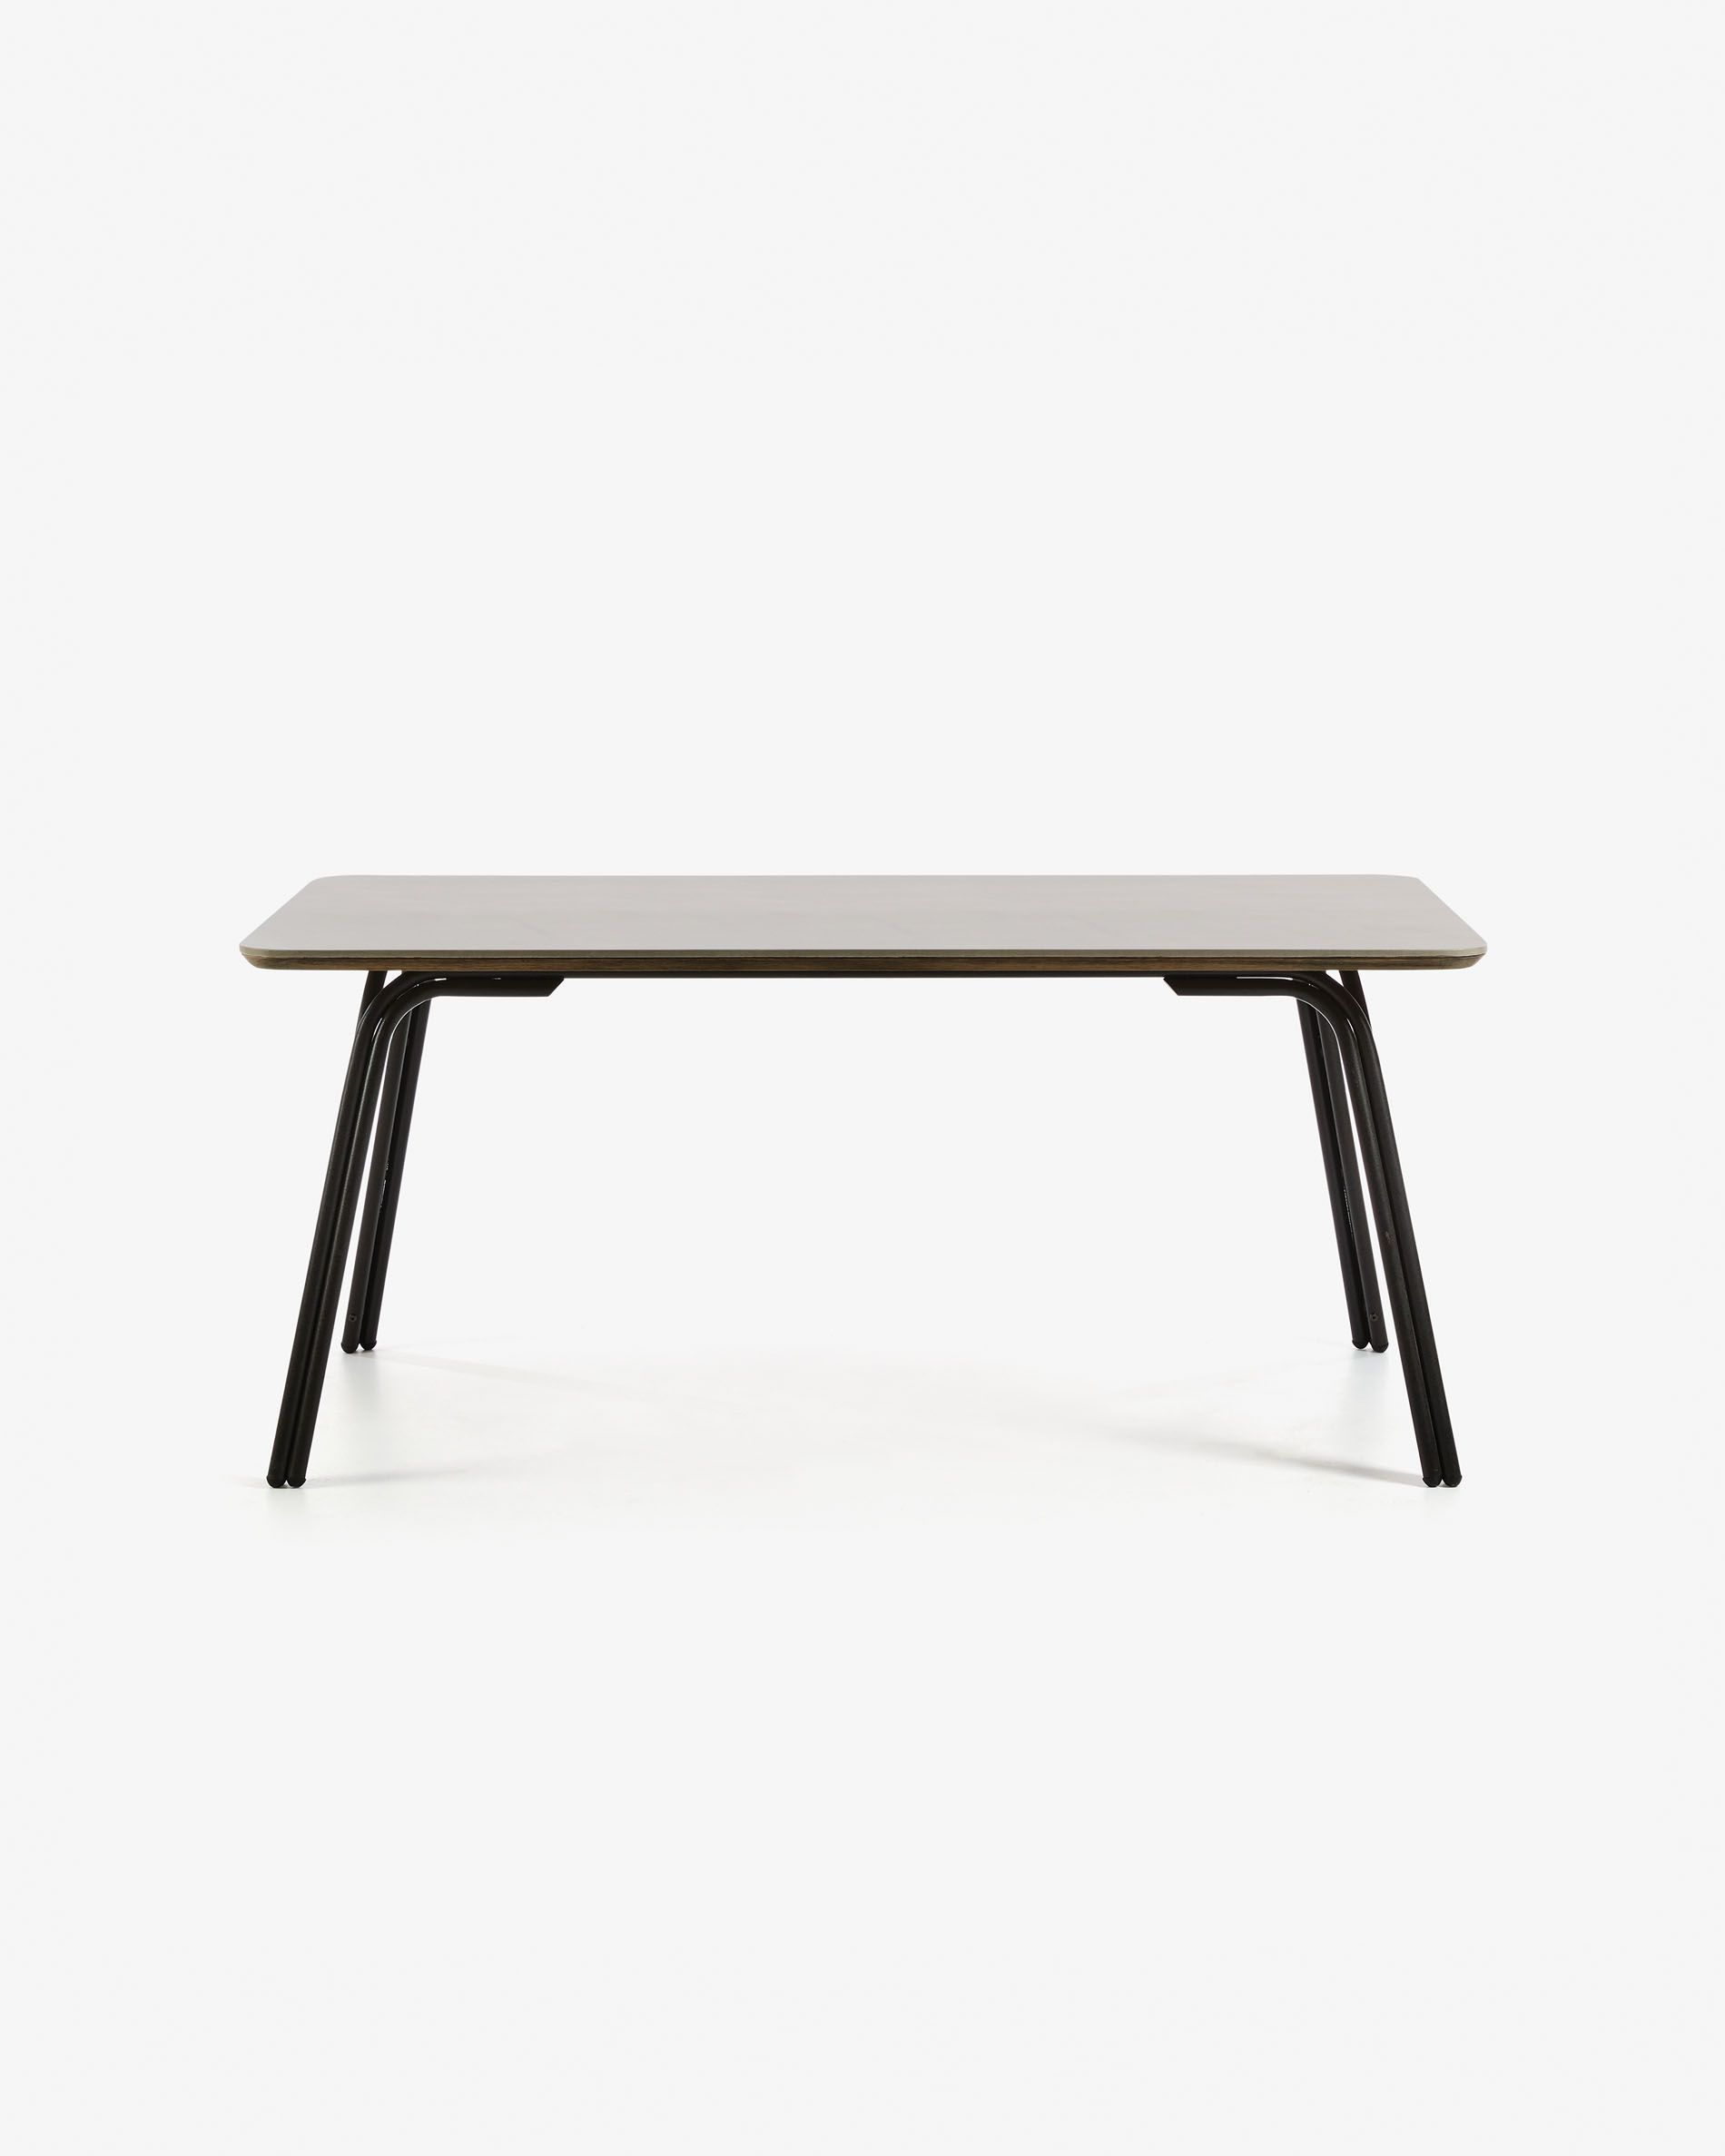 Table En Pierre Exterieur Inspirant Table Newport 180 X 100 Cm Of 39 Best Of Table En Pierre Exterieur